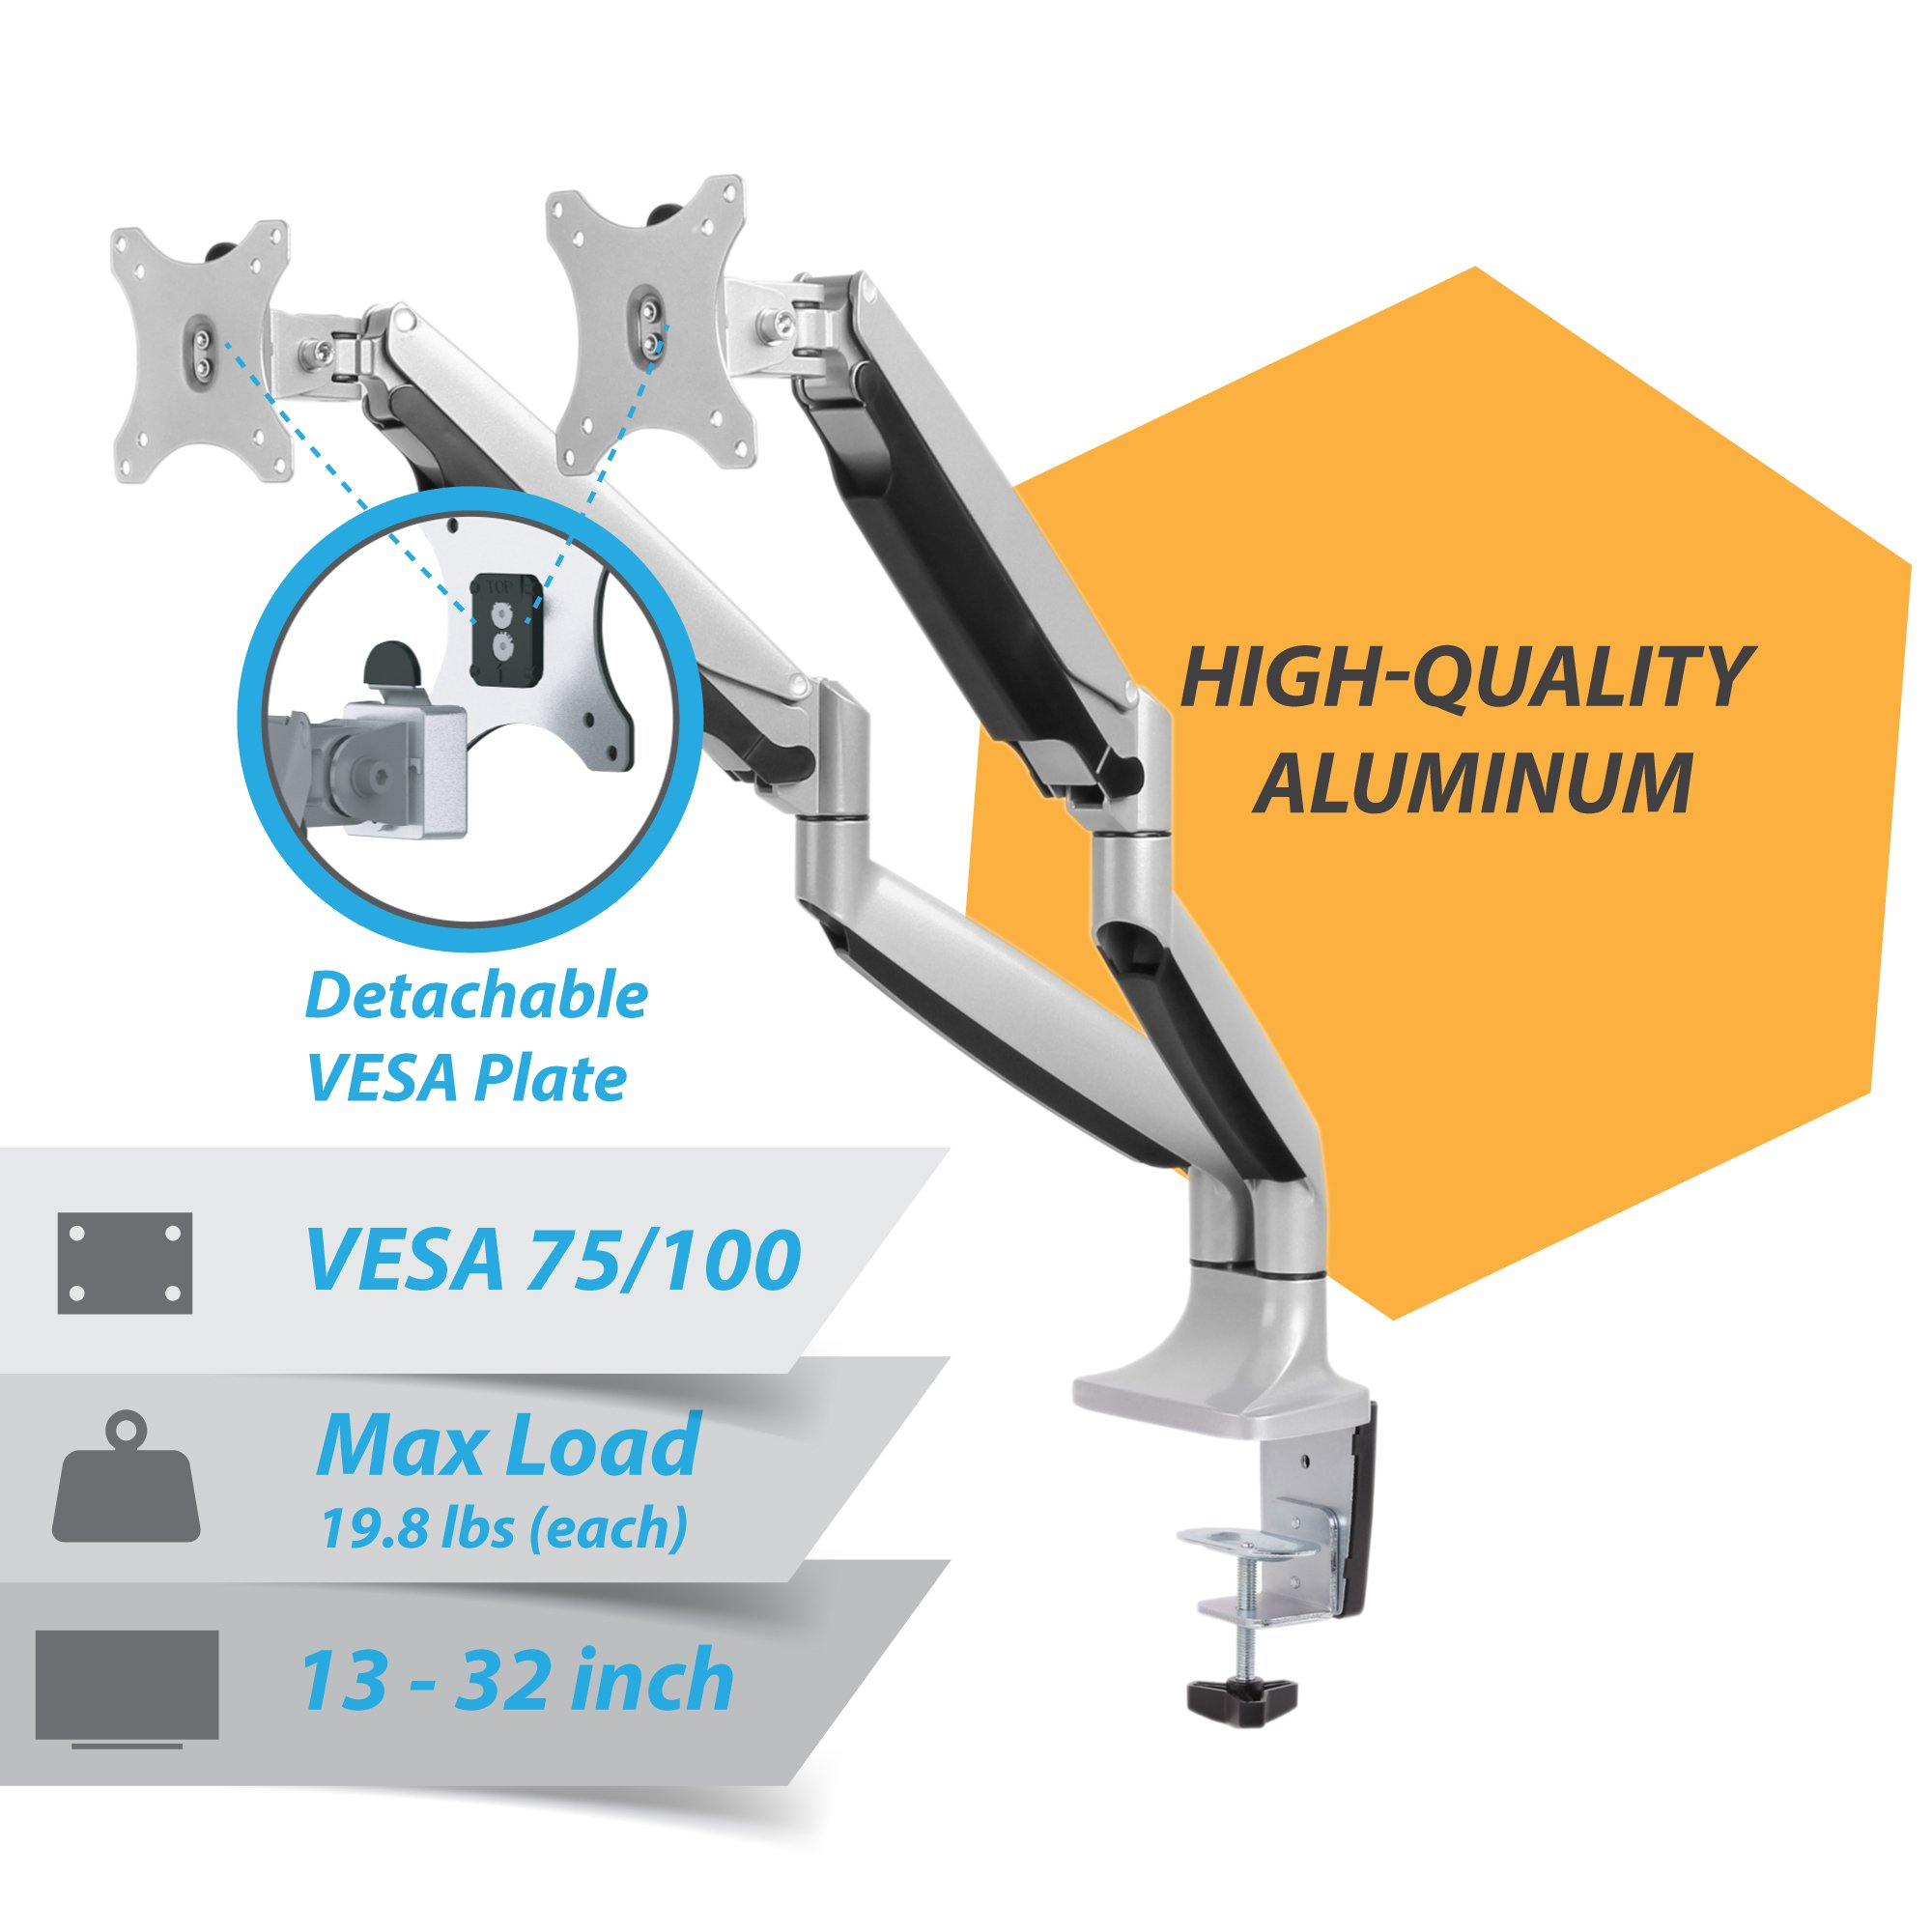 Monitor Mount Arm, AVLT-Power Premium Aluminum Dual Monitor Desk Mount Arm Stand - Gas Spring - Heavy Duty Holds 13'' to 32'' Screens, Up to 19.8 lbs Each, VESA 75x75 or 100x100 by AVLT-Power